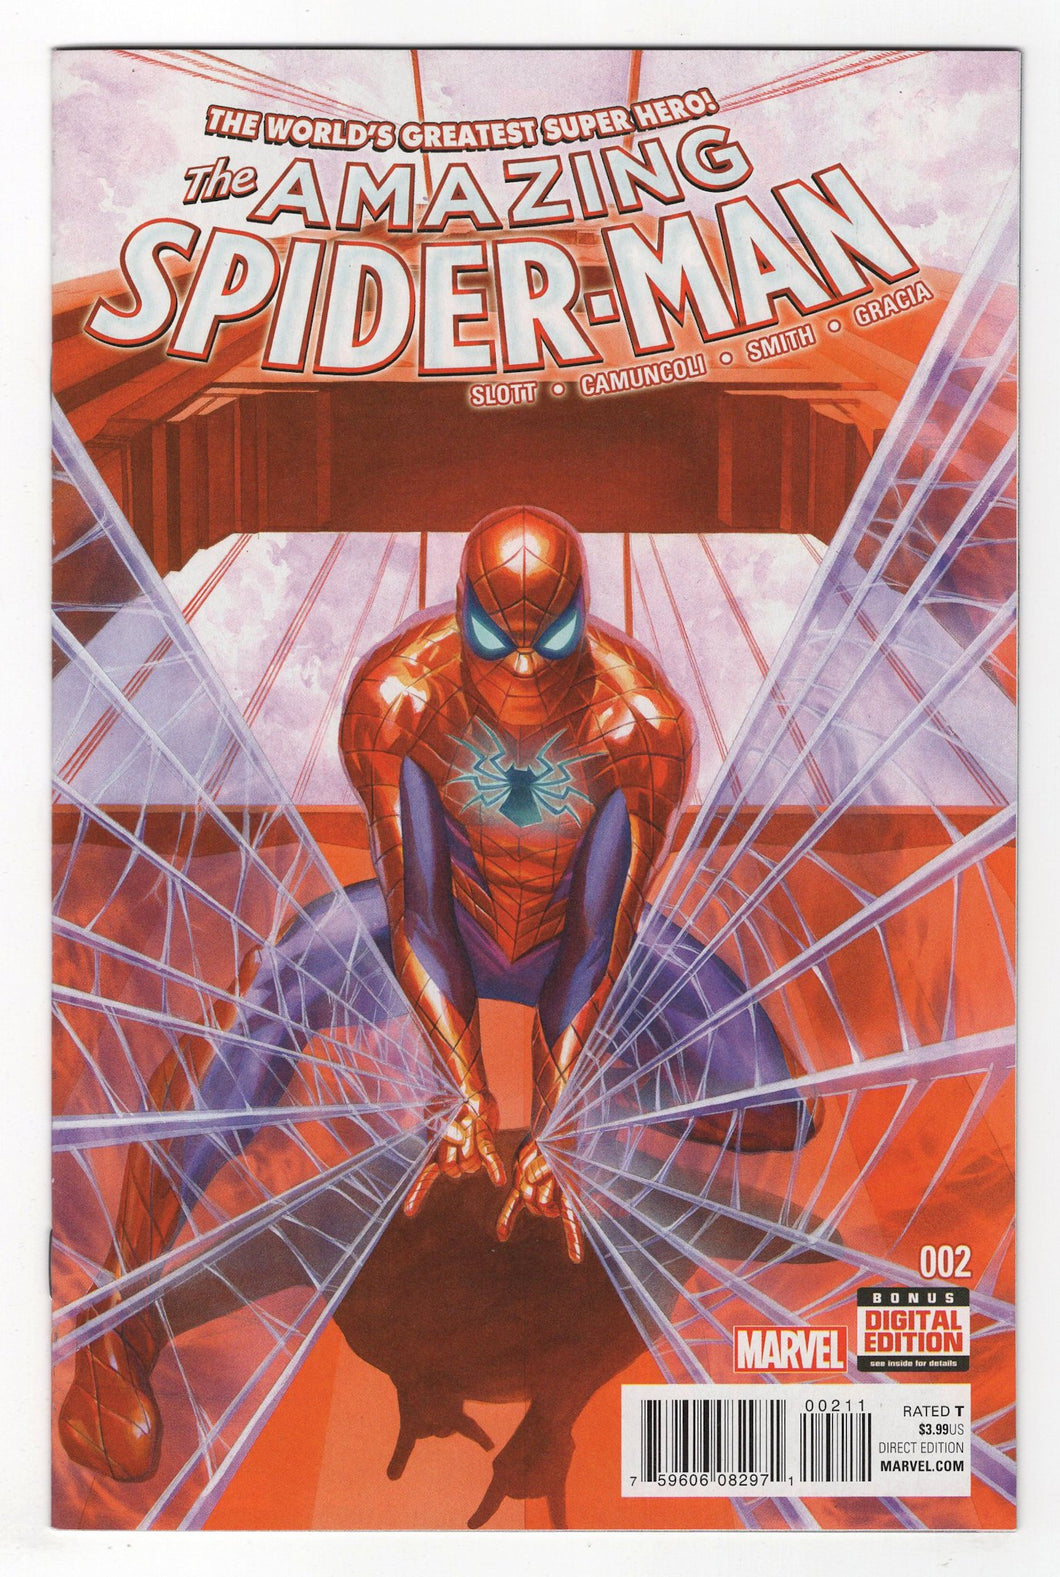 Amazing Spider-Man #2 Cover Front